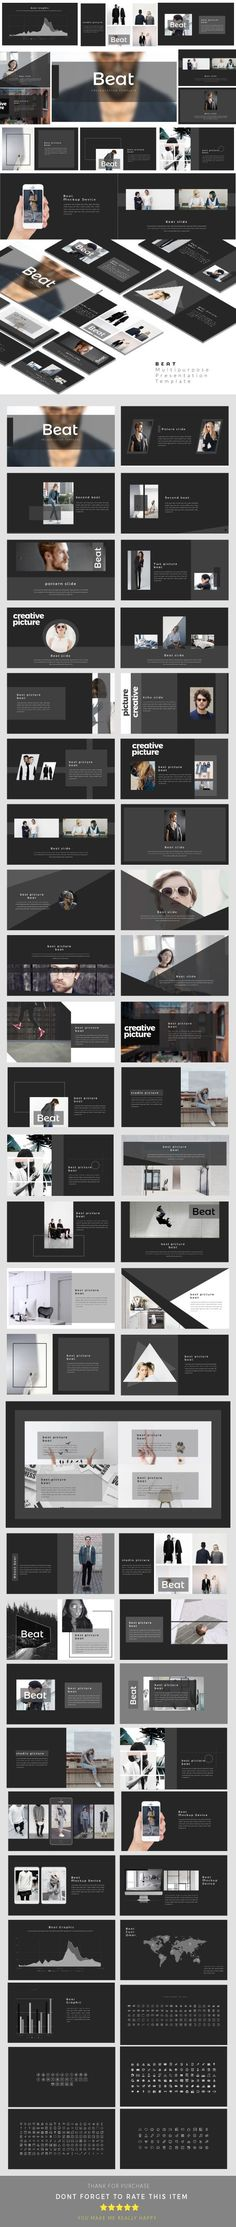 #Beat - Multipurpose Presentation Templates - Business #PowerPoint Templates